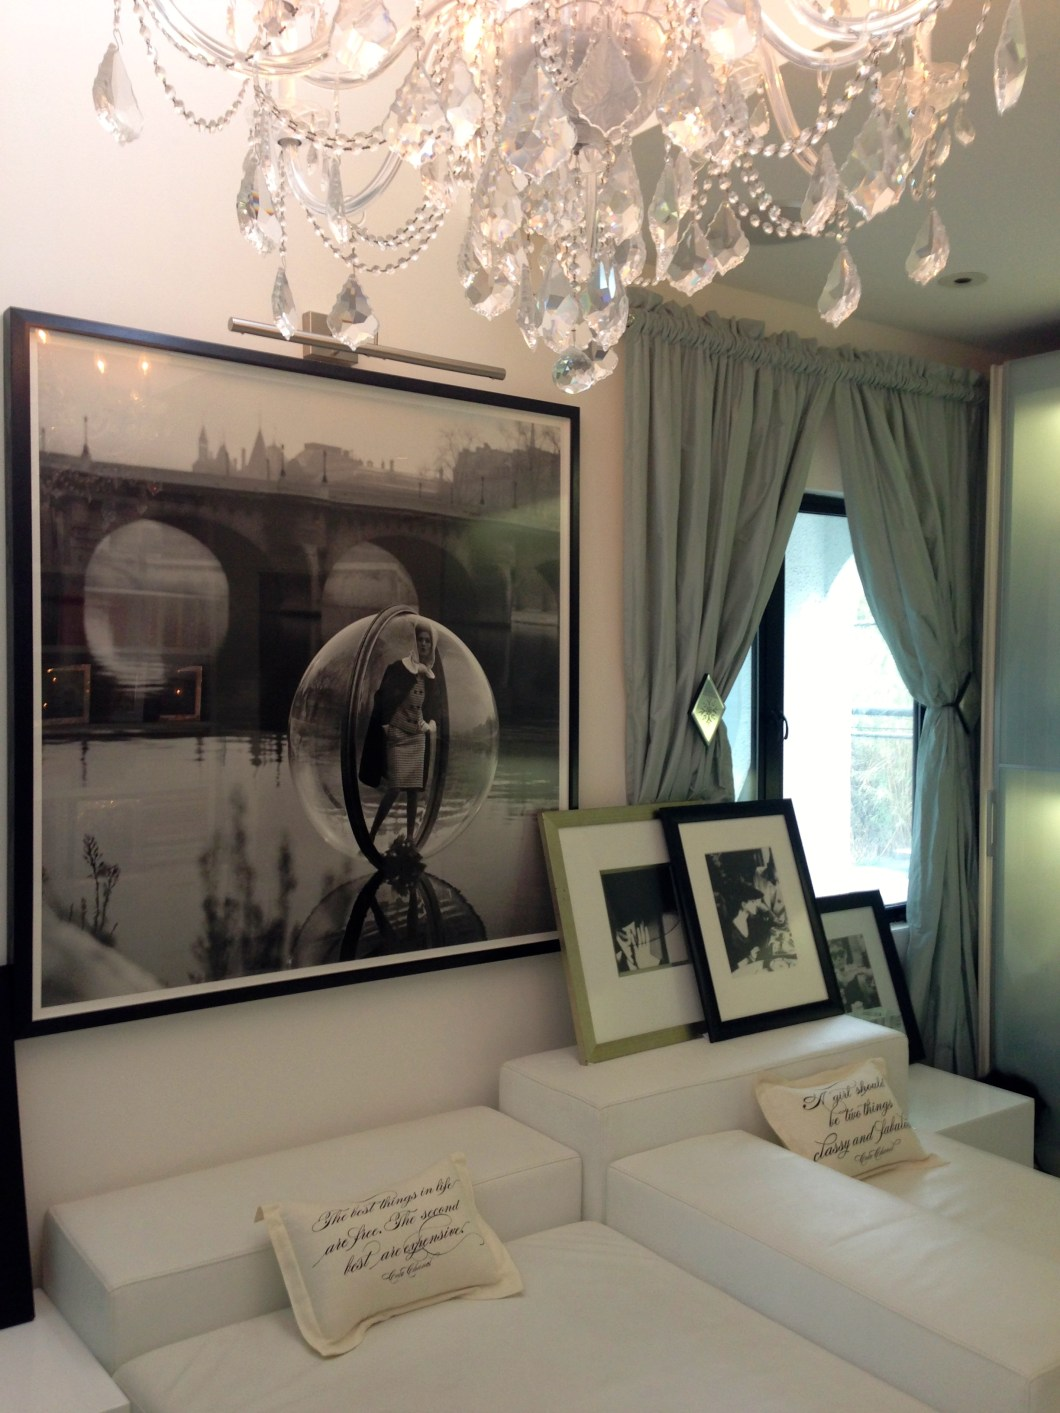 This is my dressing room/fashion library.  It features two beautiful photos by famous fashion photographer, Melvin Sokolsky